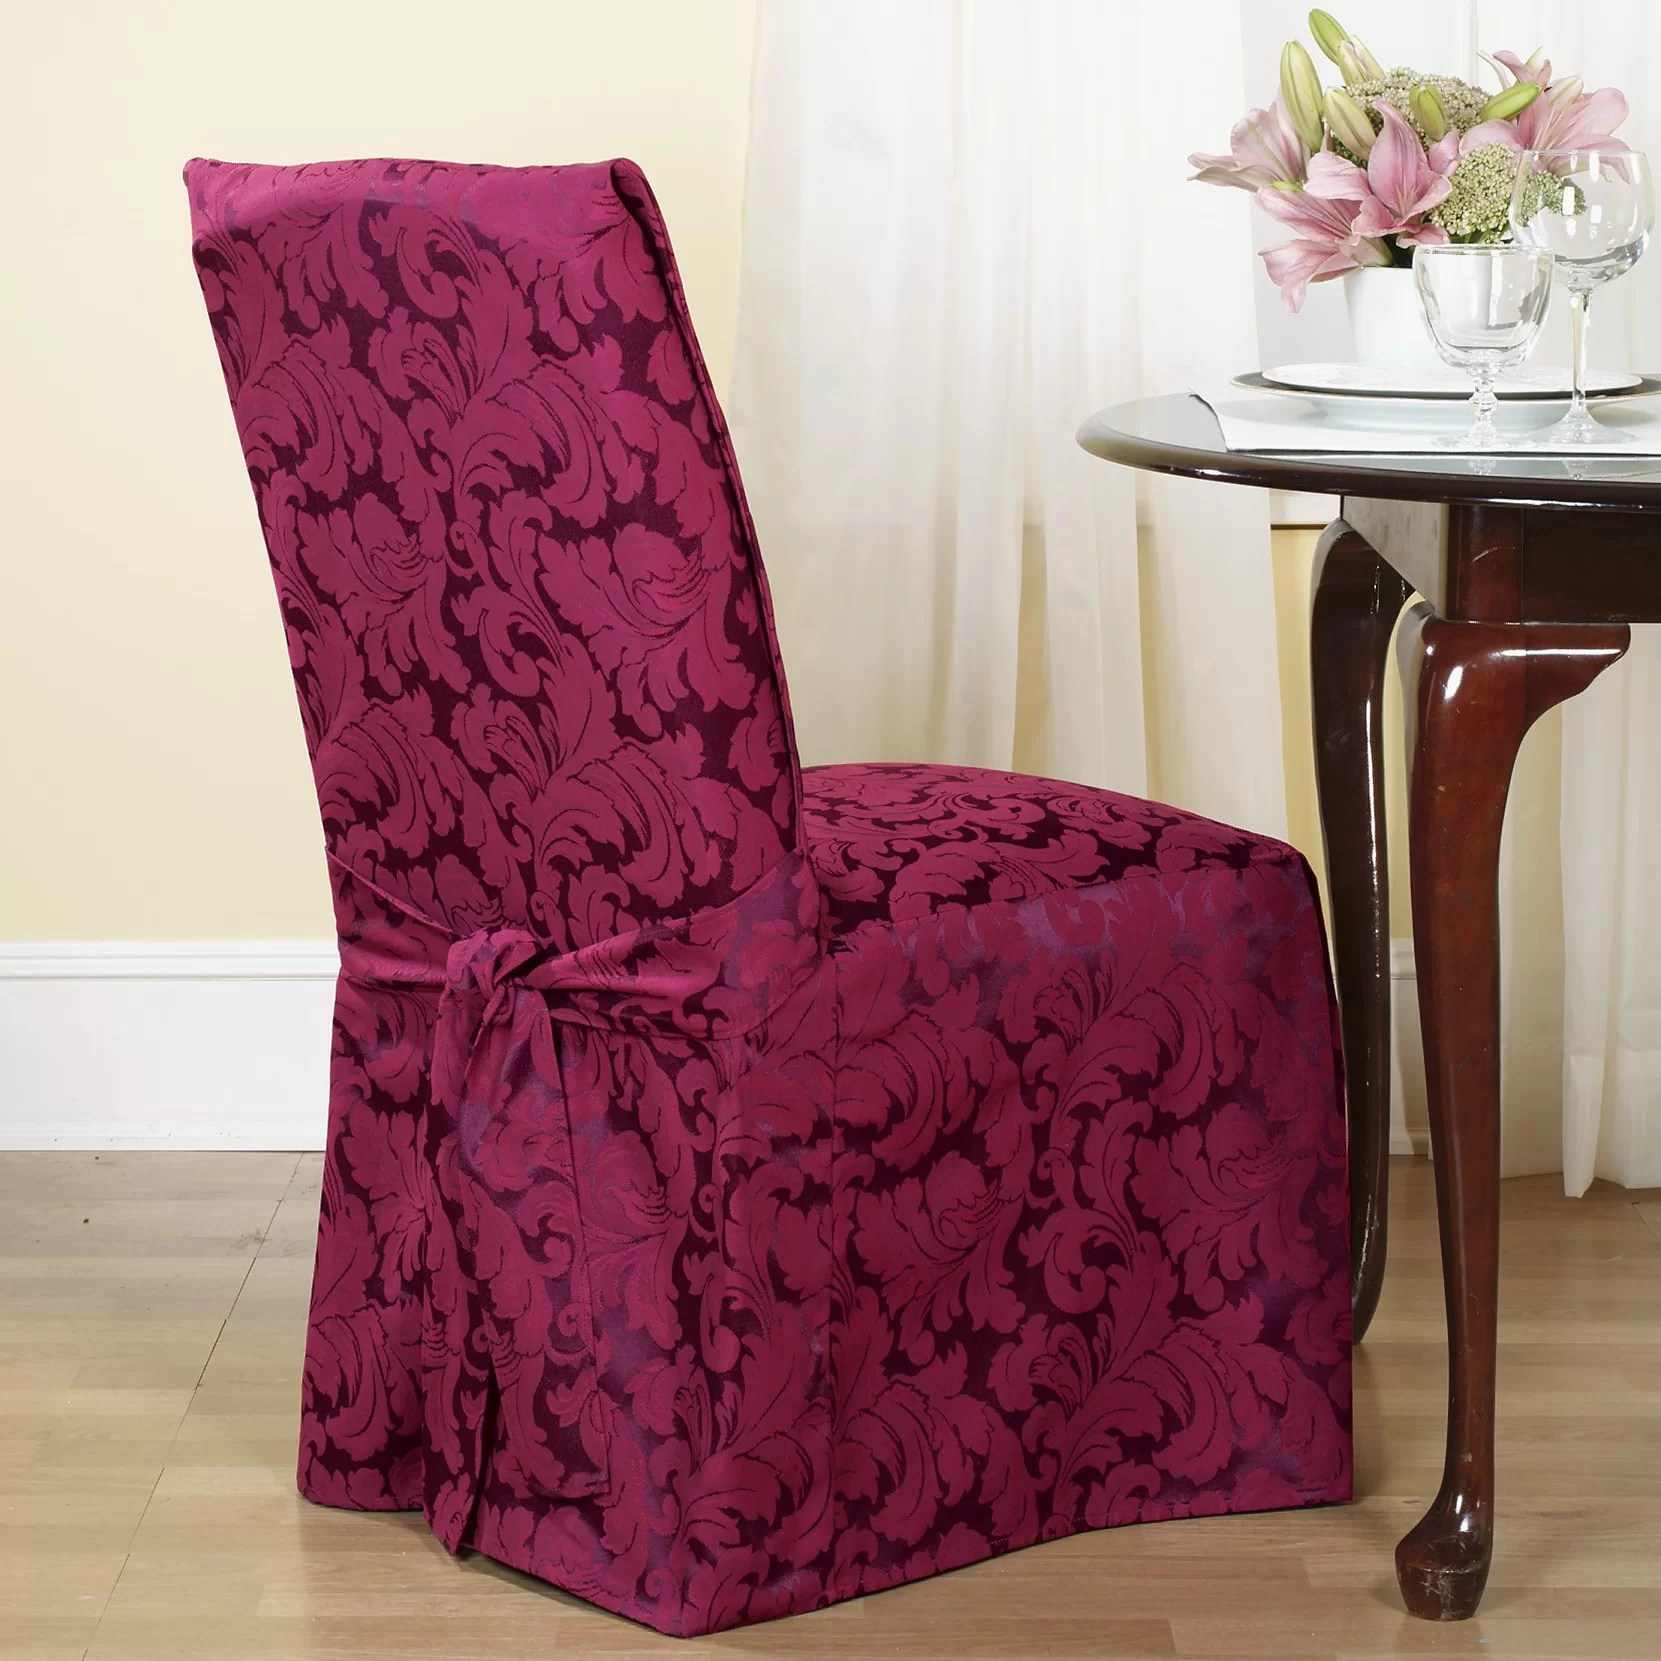 chair covers next day delivery best posture for computer sure fit scroll classic dining skirted slipcover